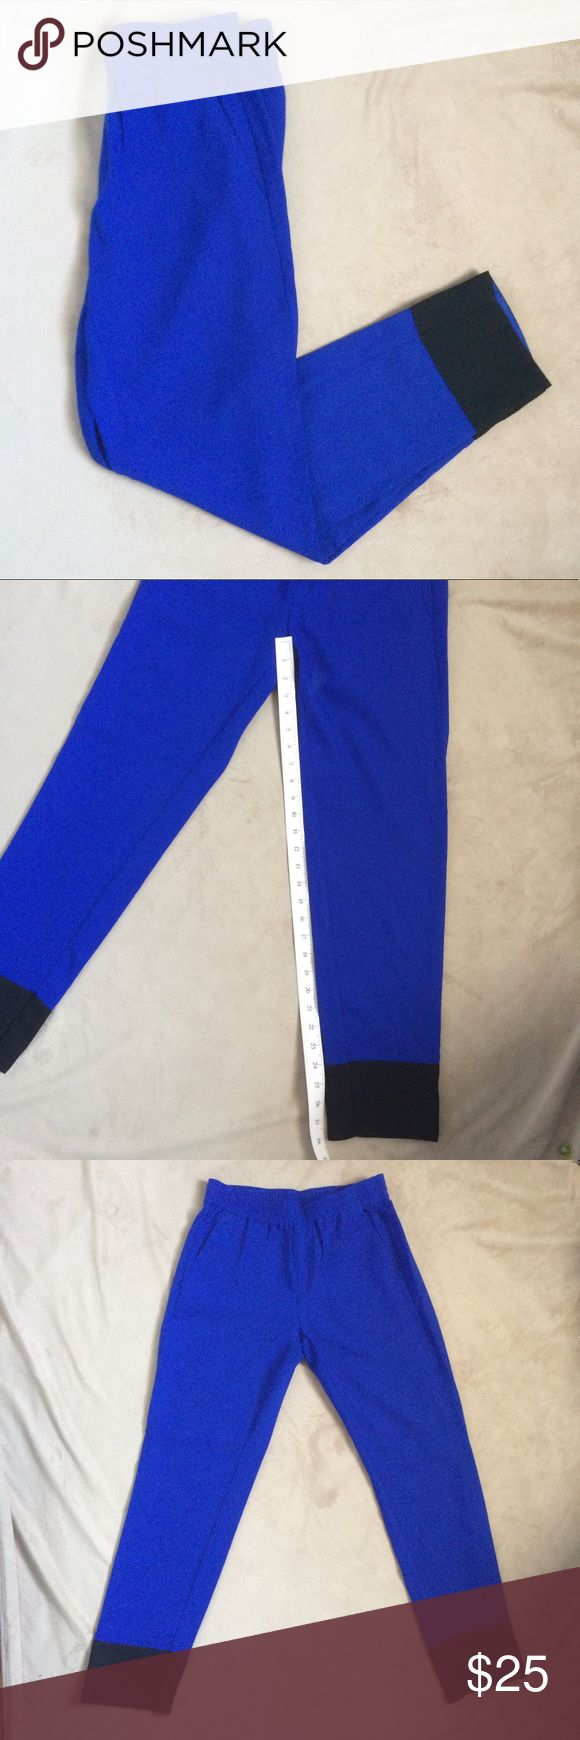 "Banana Republic Crop Trouser sz 2 EUC, these trousers are in a vibrant colbalt blue color with black trim. Cropped style works with flats, heels, or even sandals in summer. Two front pockets and two back pockets. Elasticized waist is about 2"" thick so it will add definition without digging in. Fully lined inside. Approximately 14"" across at waist and 28"" inseam. 100% polyester. Banana Republic Pants Trousers"